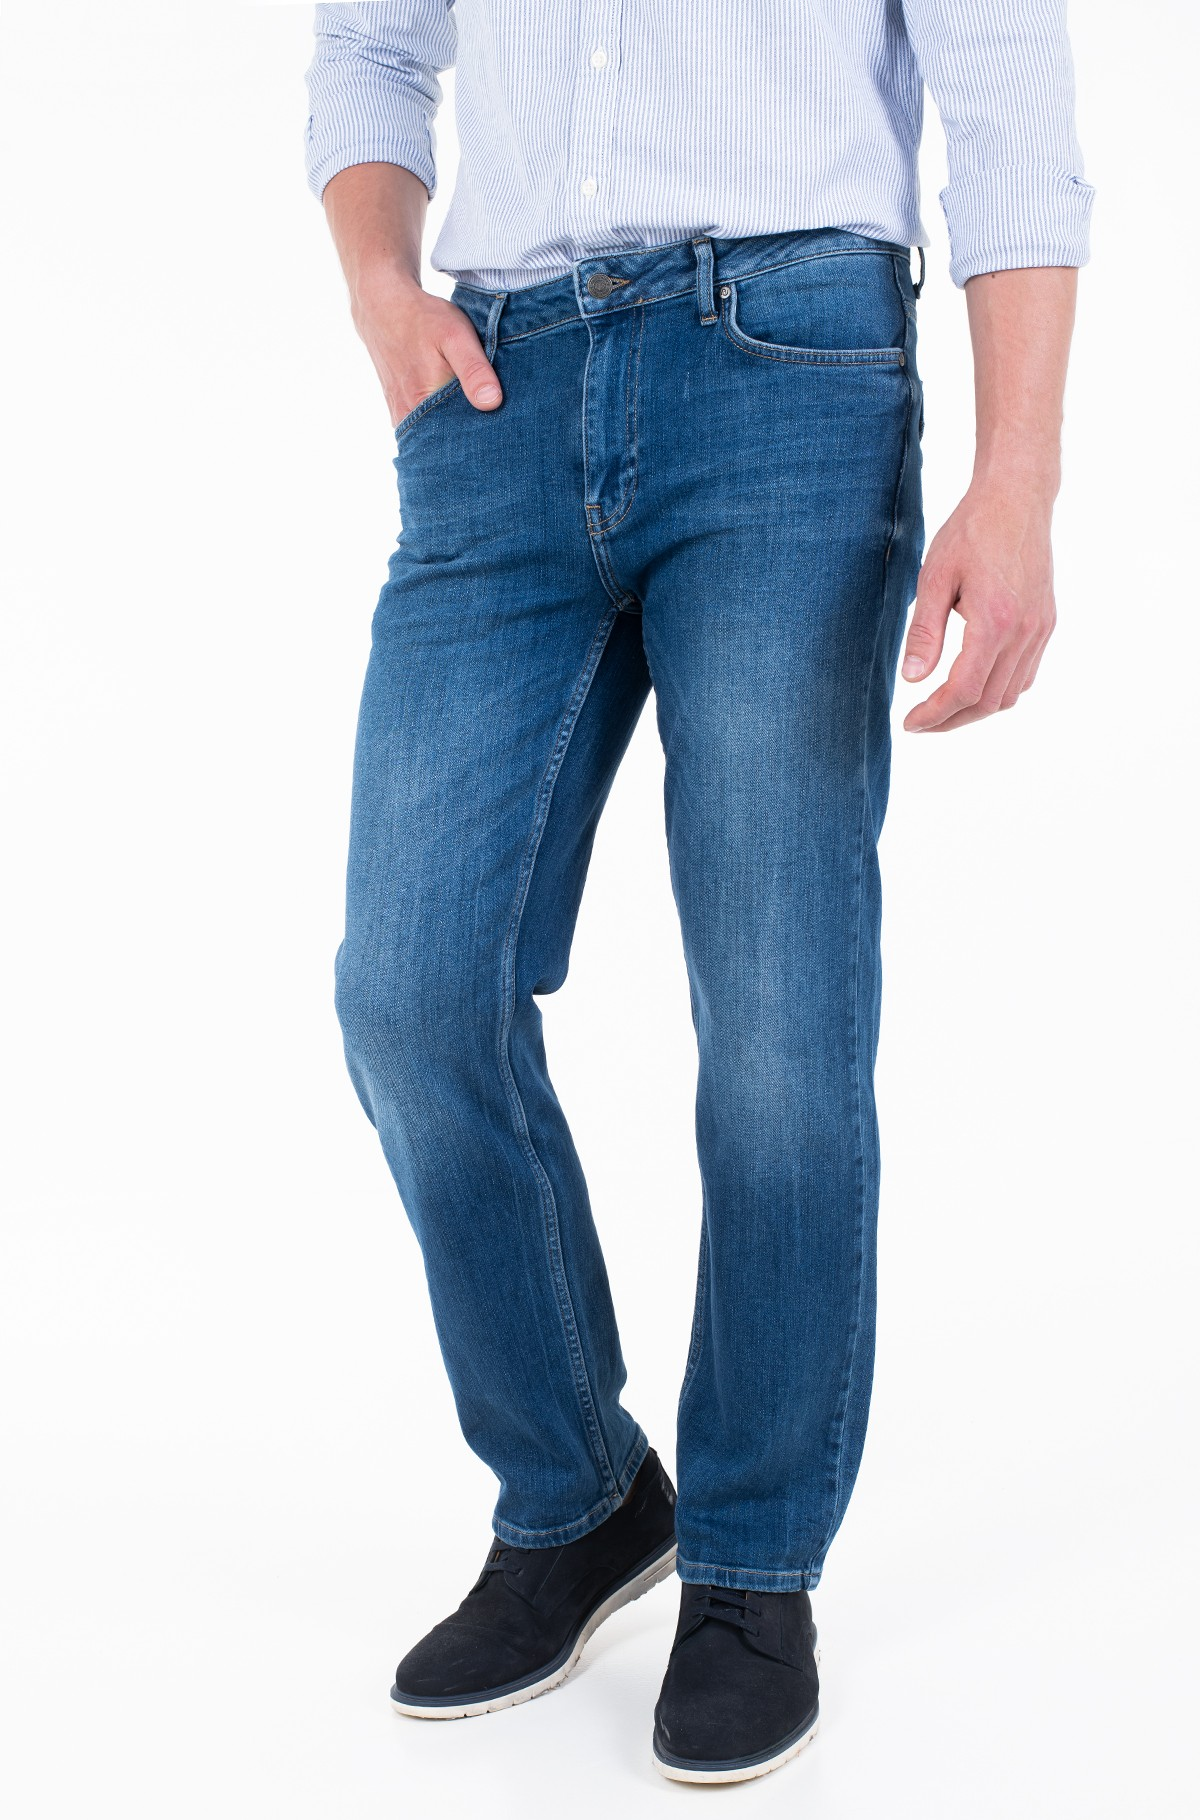 Jeans Jaanus02 regular-full-1